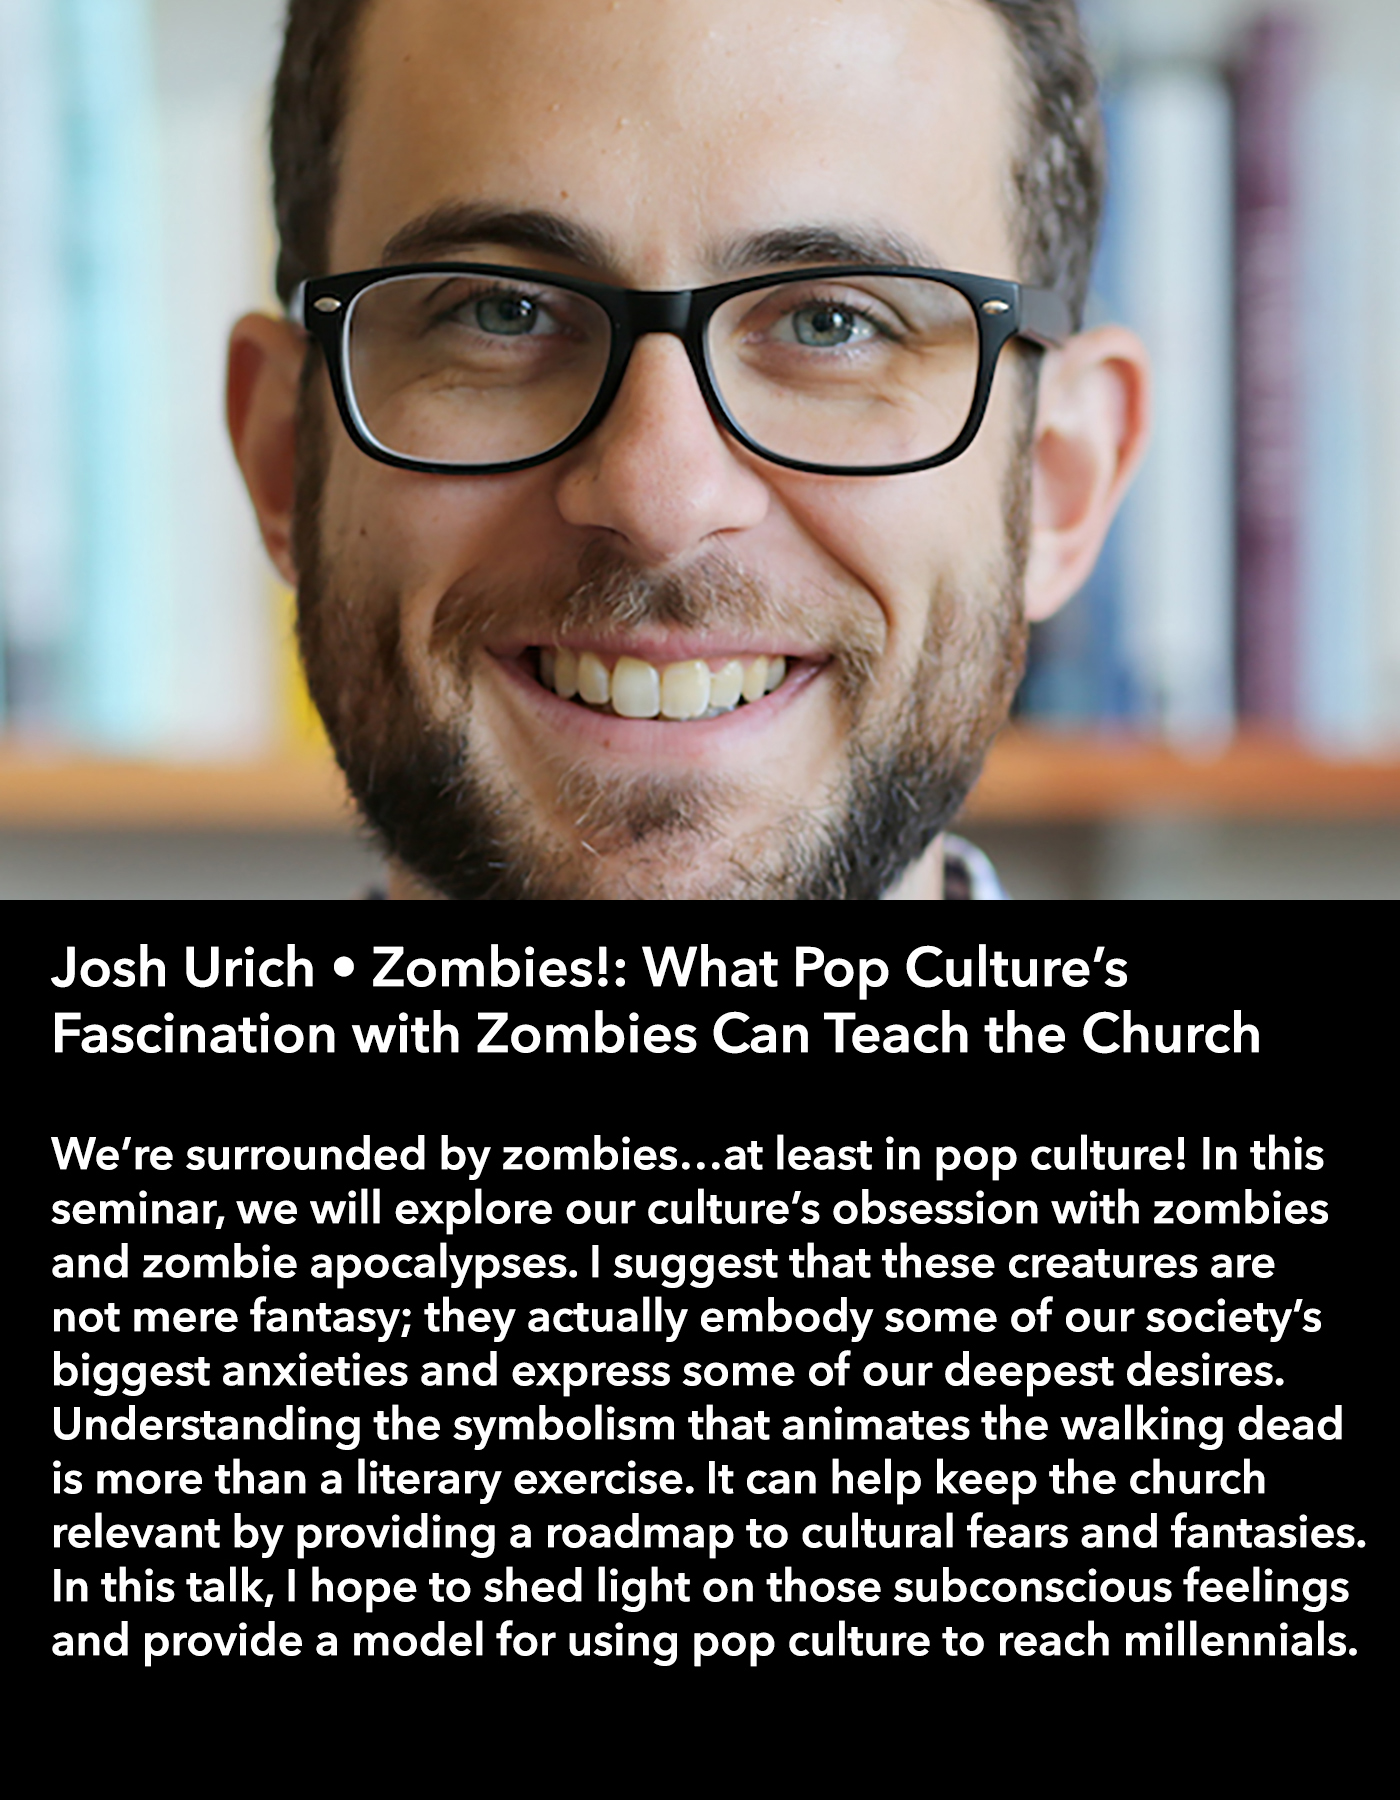 Josh Urich • Zombies!: What Pop Culture's Fascination with Zombies Can Teach the Church • Friday Night, March 17 • 8:30 – 9:45 pm